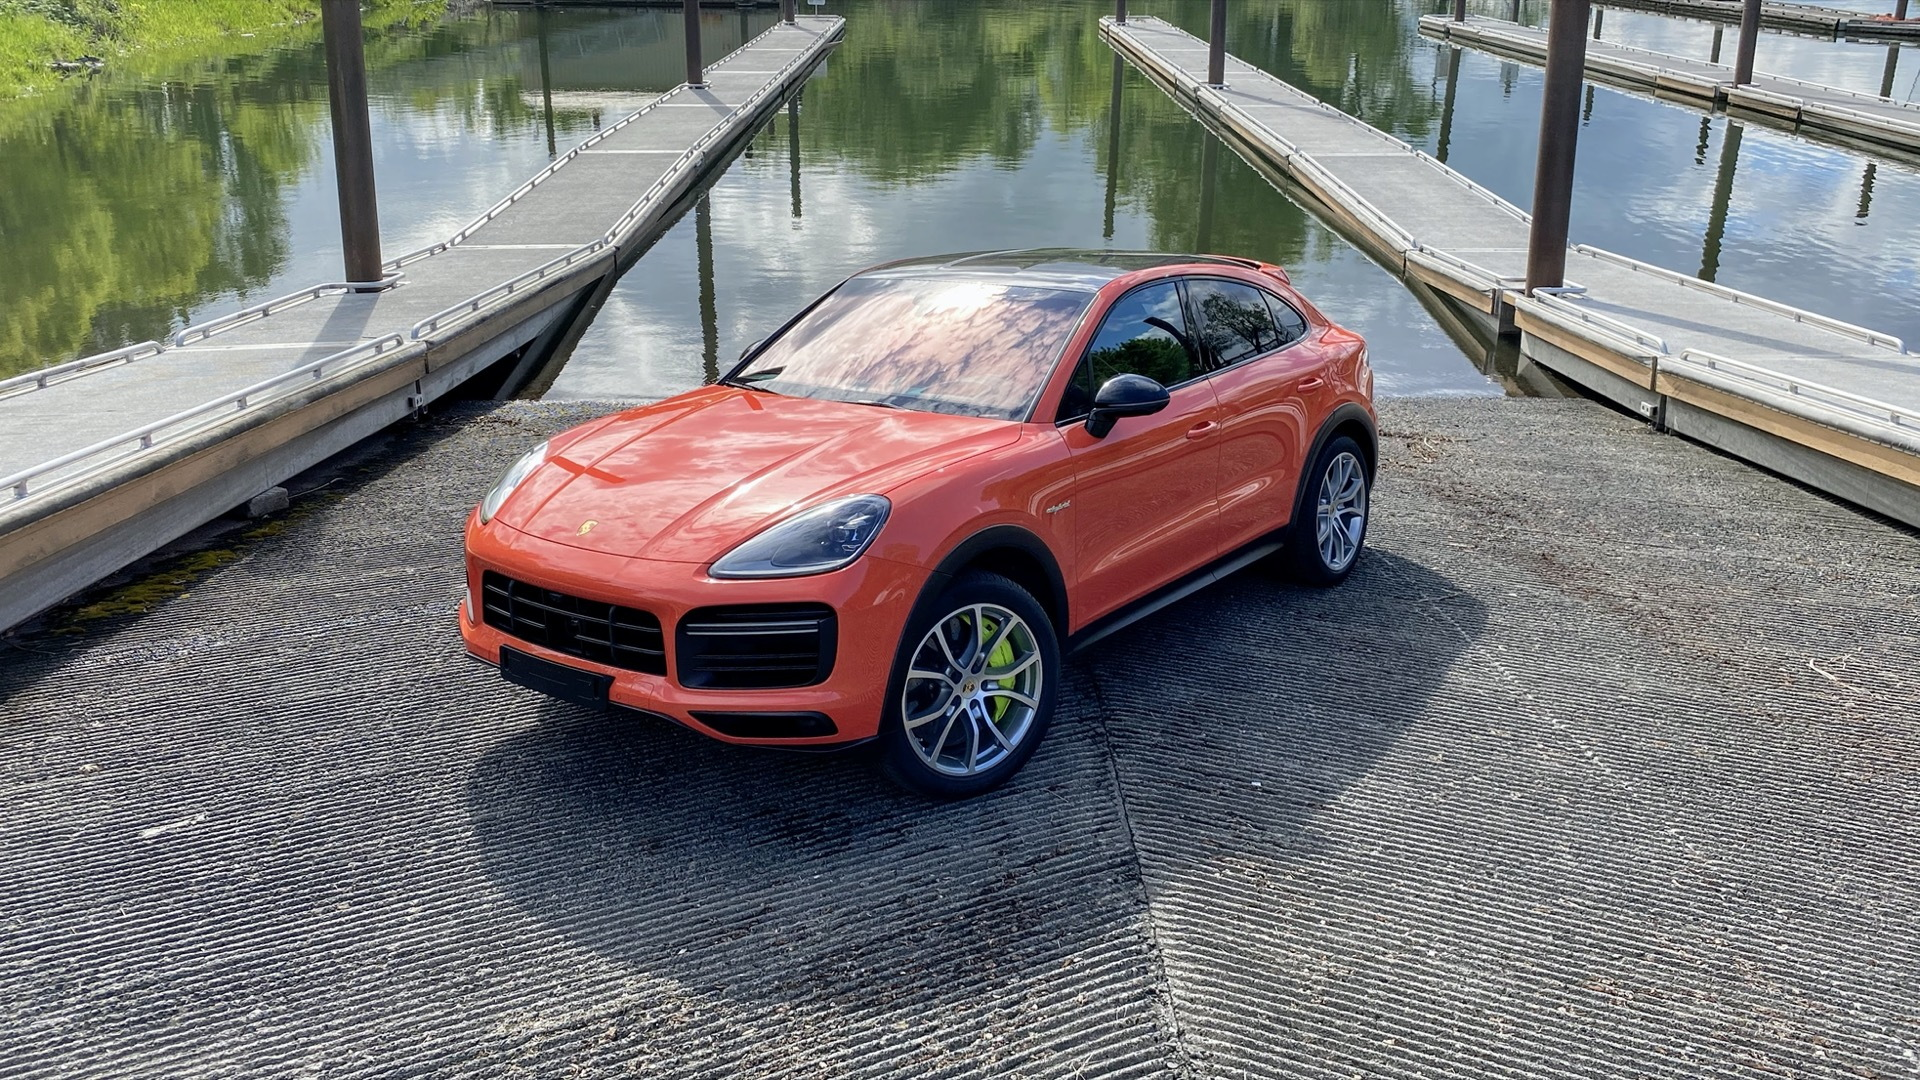 2020 Porsche Cayenne Turbo S E-Hybrid Coupe drive review  -  July 2020